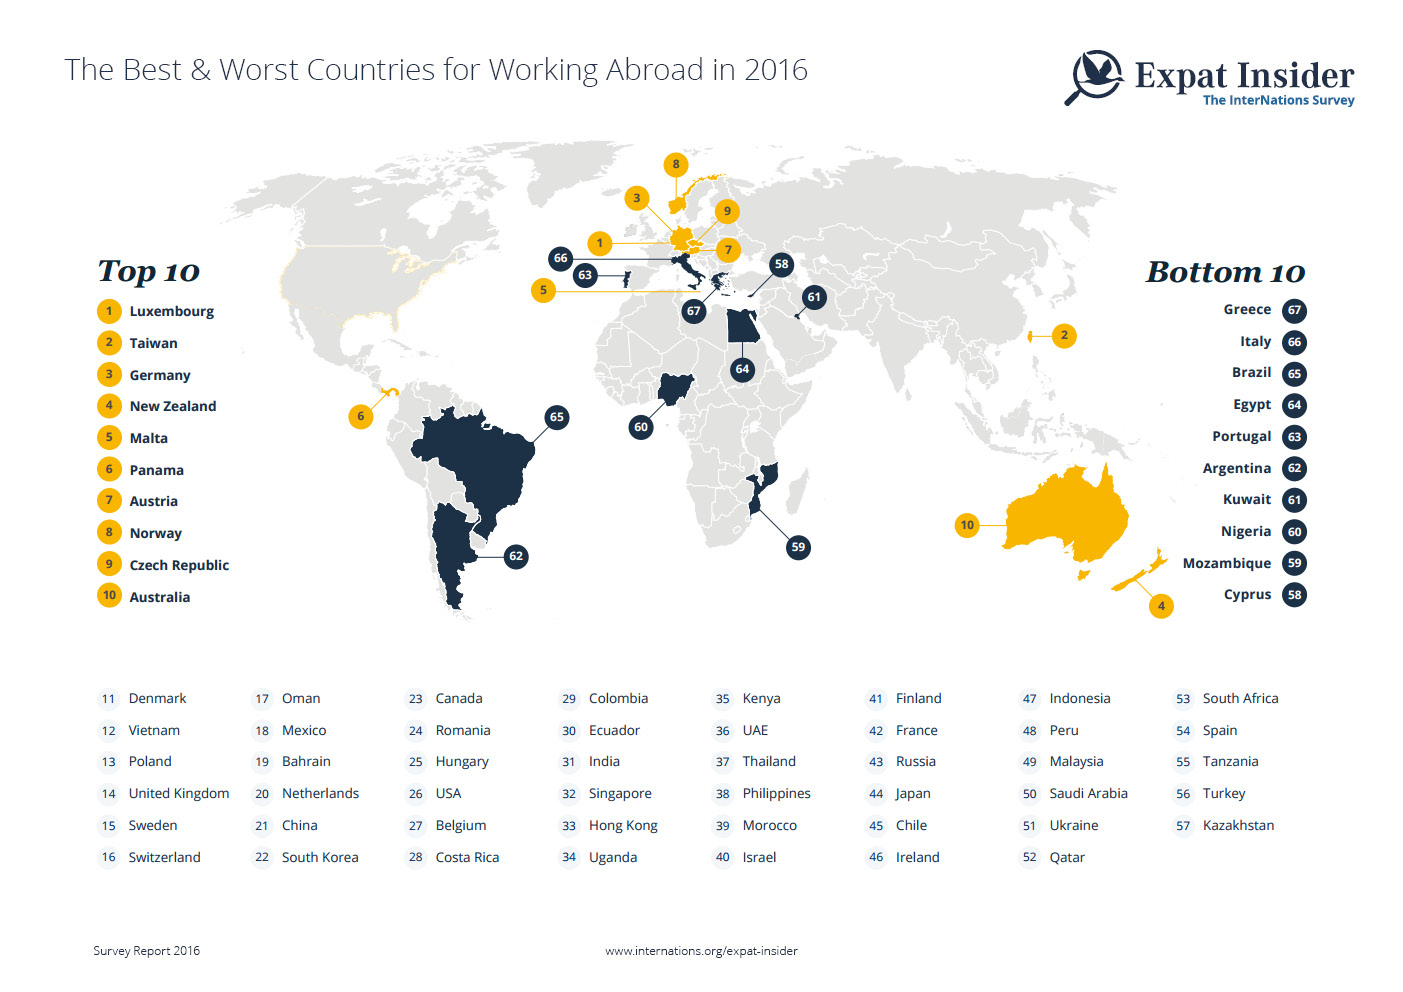 Expat Insider 2016: Top Destinations for Working Abroad